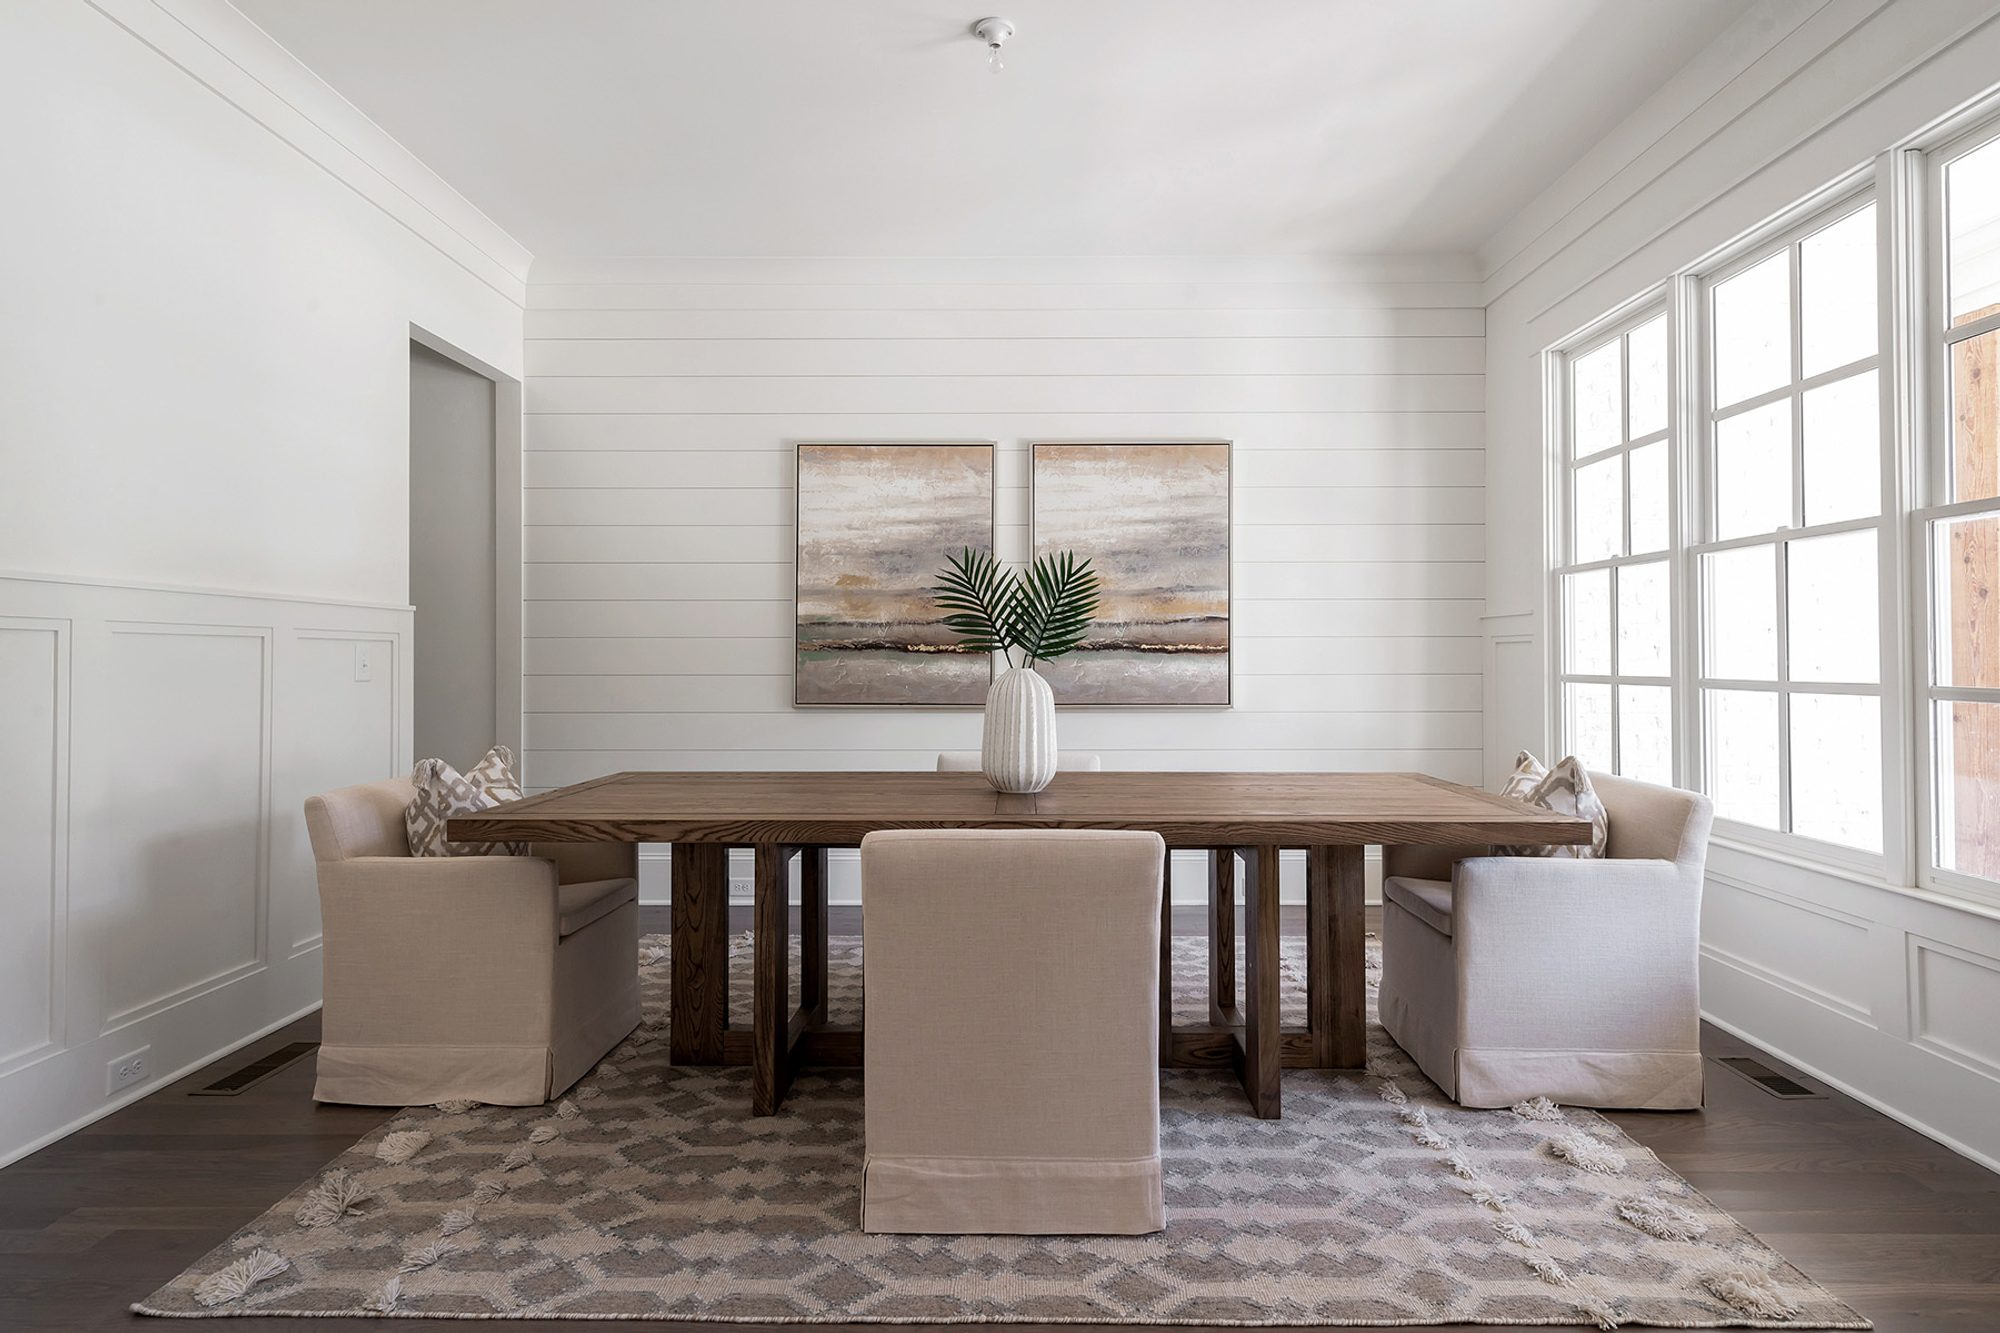 hand knotted dining room area rug in a transitional room with shiplap